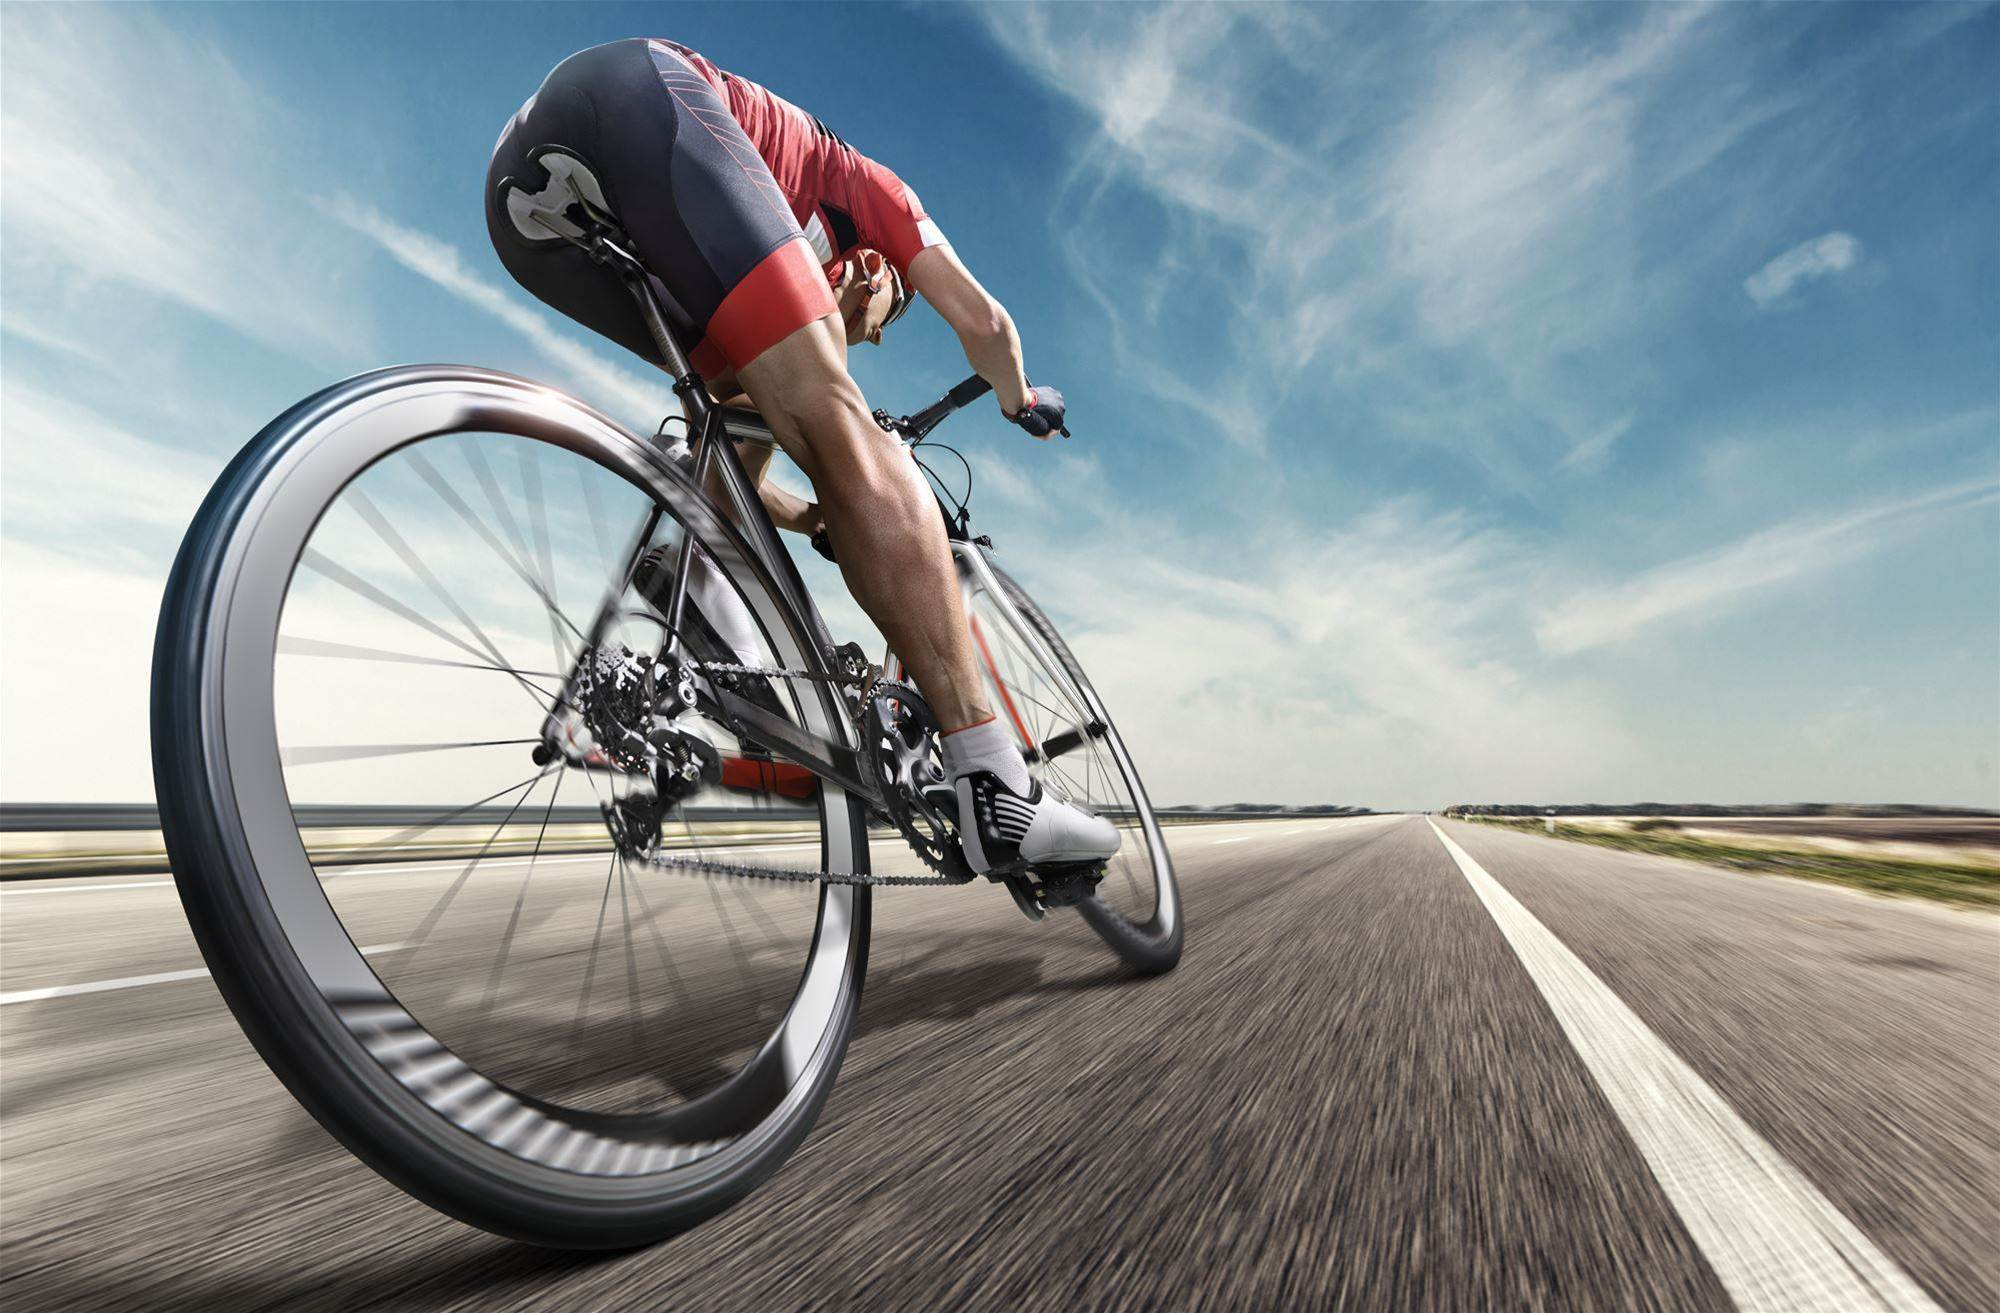 The Simplest Way to Understand Your Training Zones